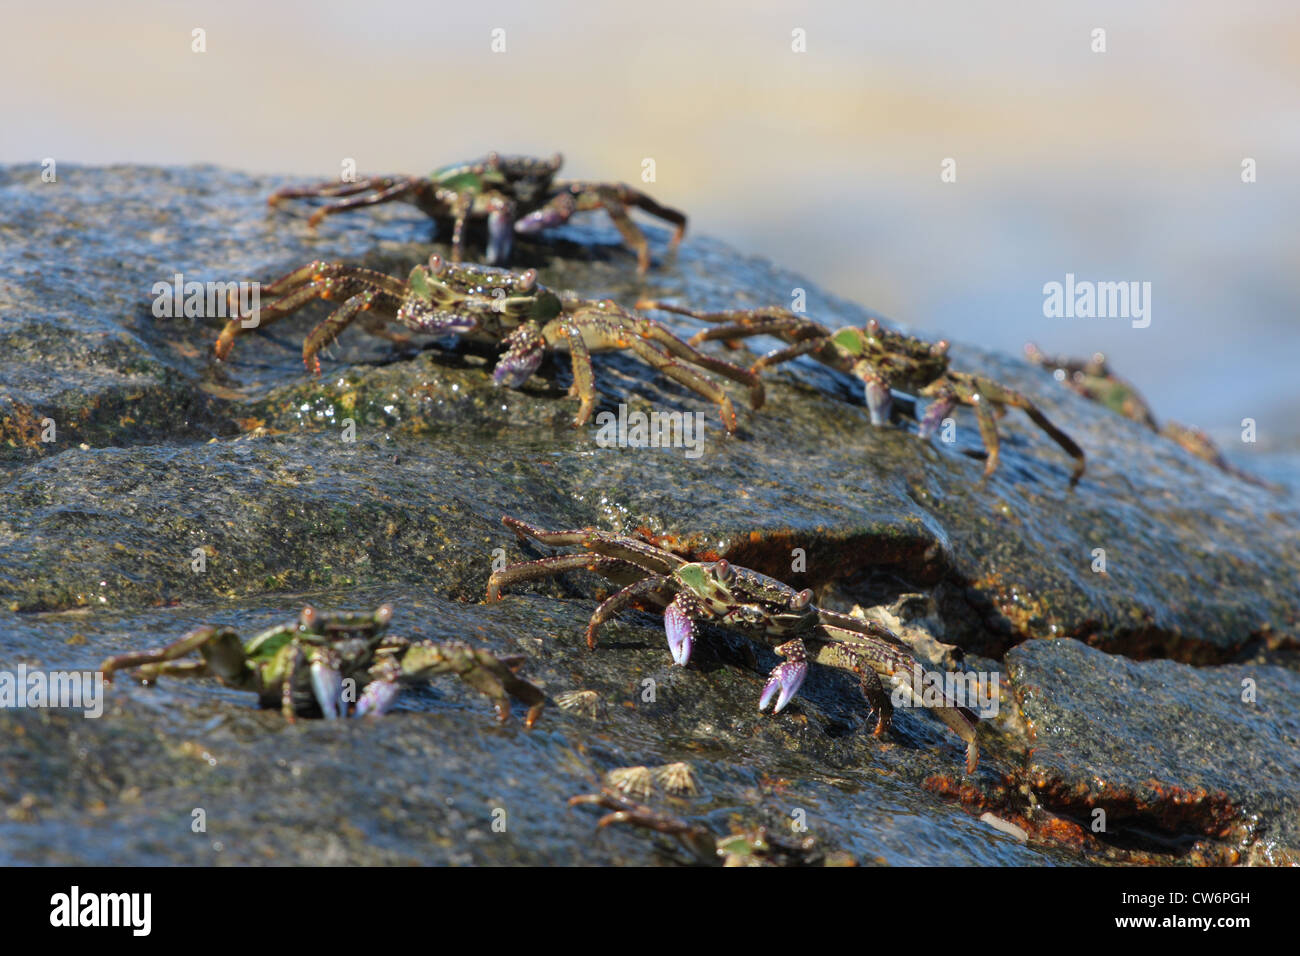 marsh crabs, shore crabs, talon crabs (Grapsus spec., Grapsidae), some animals on a rock wet from the surf, Thailand, - Stock Image